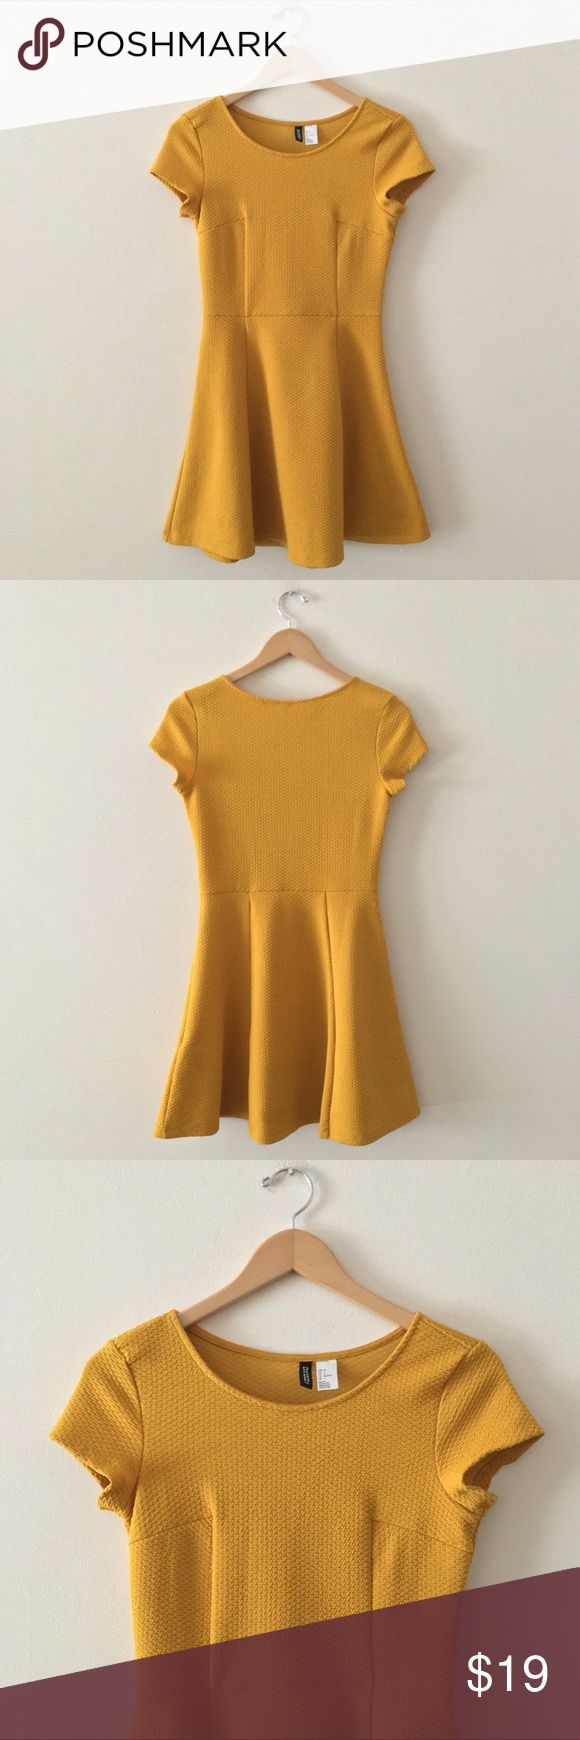 """H&M Mustard Dress Short sleeve mustard colored dress with textured pattern. Skirt flares out at waist. Excellent used condition. US 6 is a size medium. Length: 32.5"""" Armpit to Armpit: 16.5"""" H&M Dresses"""